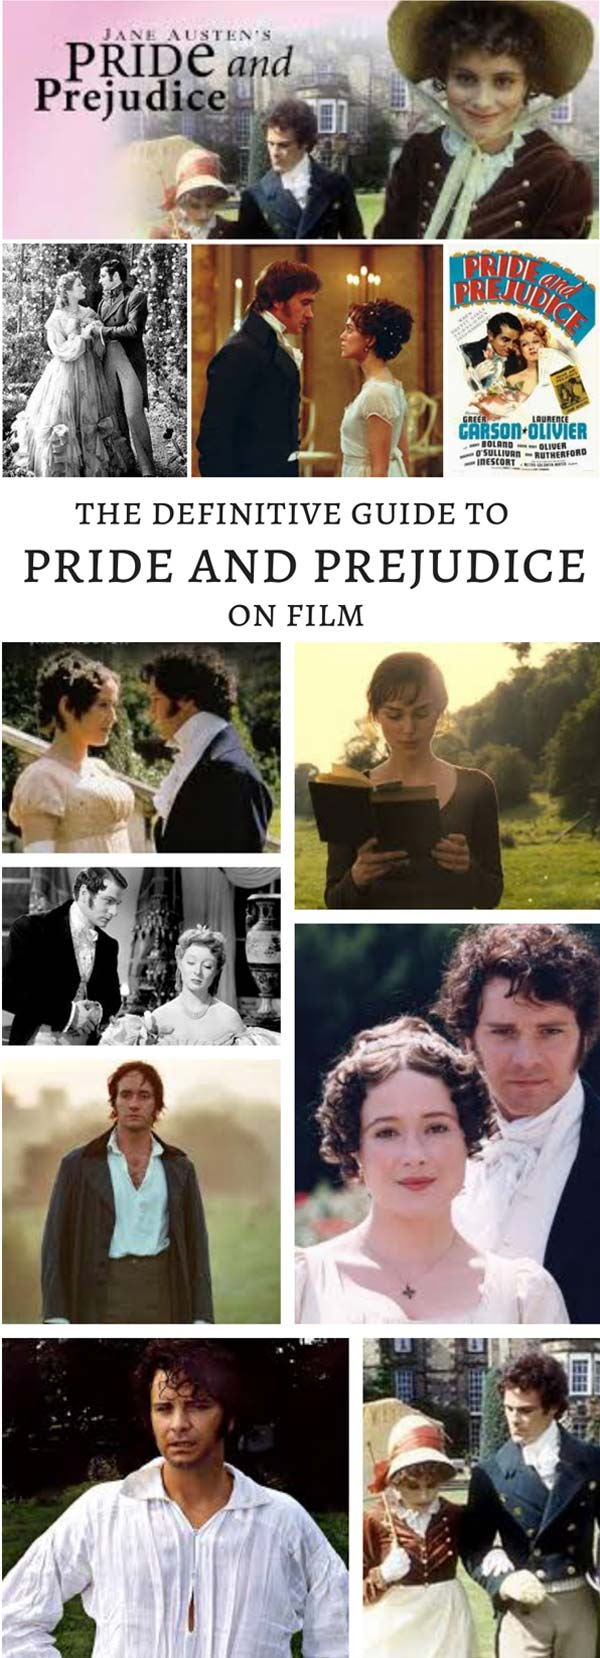 The Definitive Guide to Pride and Prejudice on Film